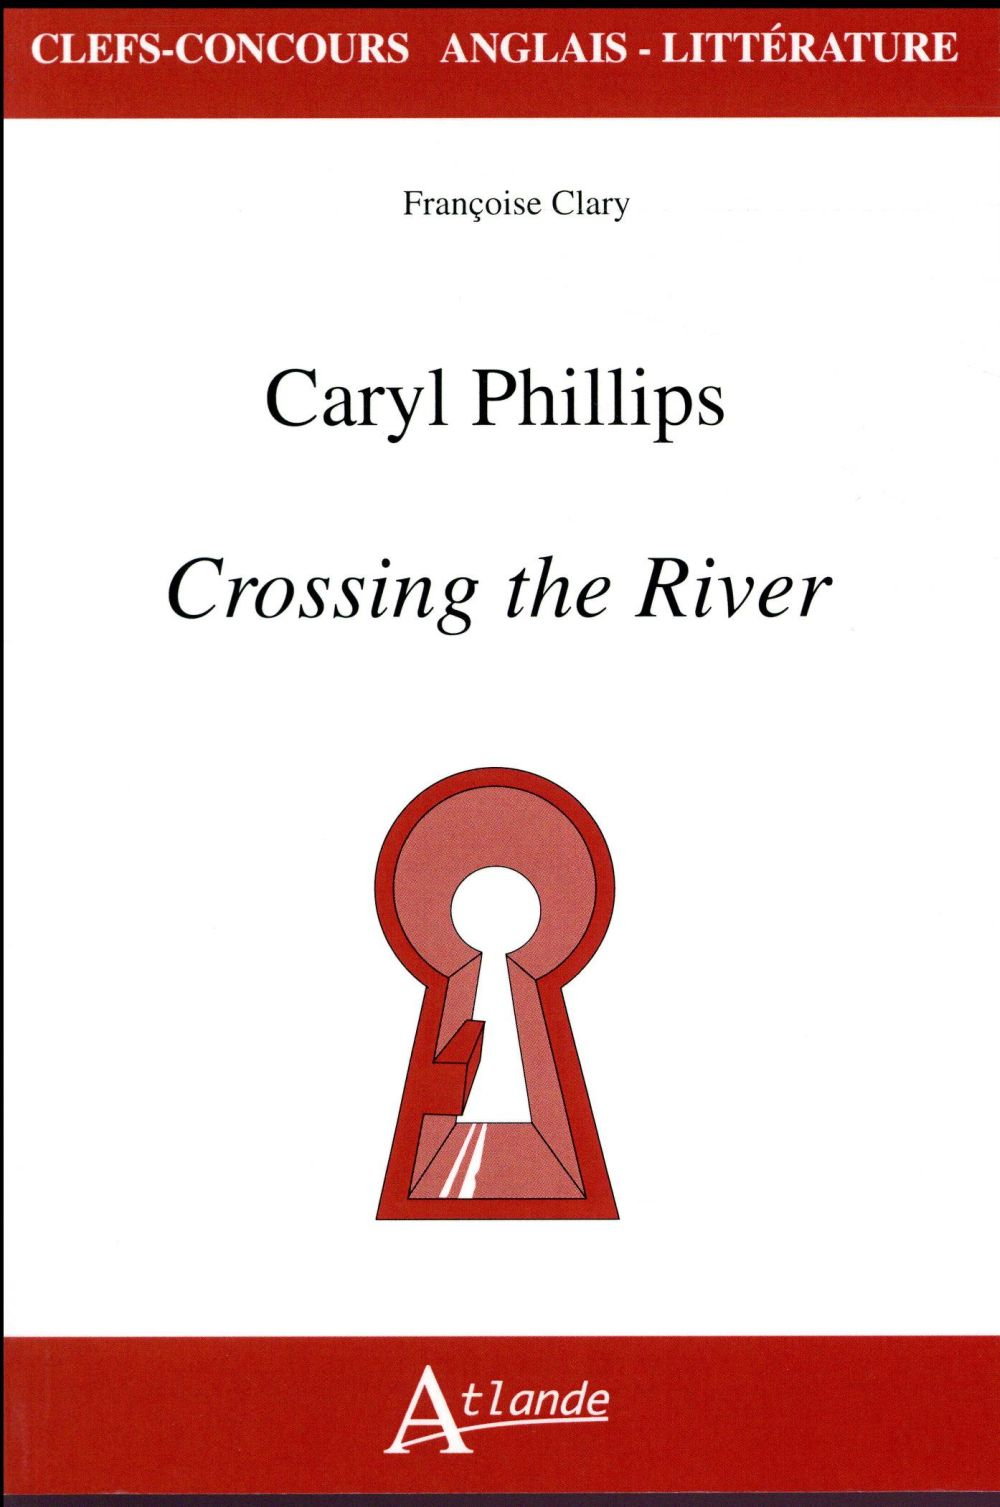 CARYL PHILLIPS, CROSSING THE RIVER